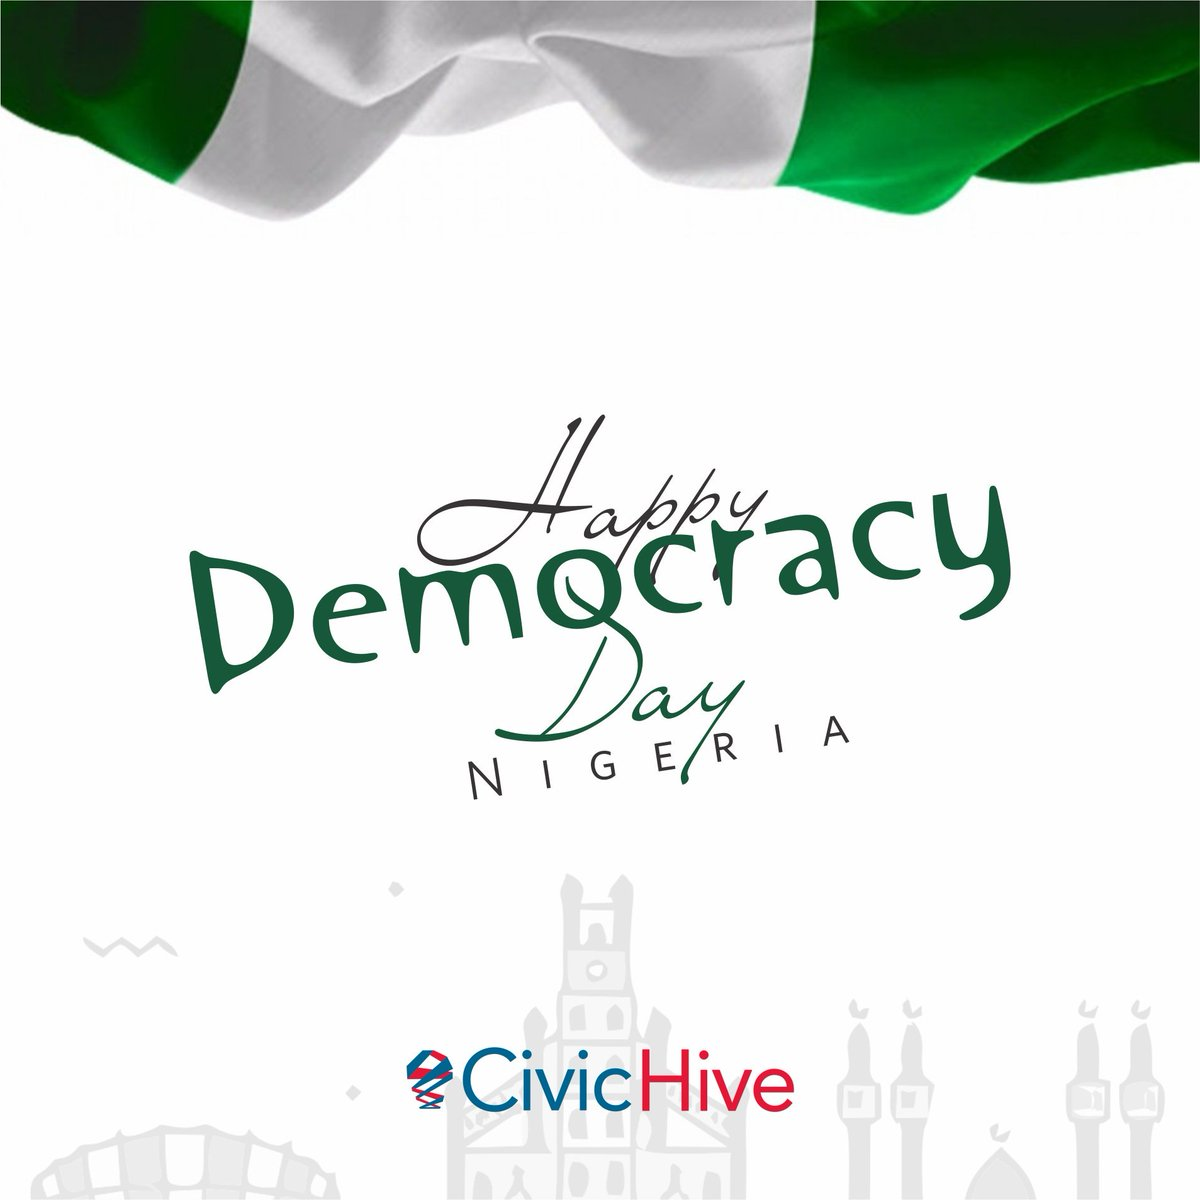 It's a New Day Nigeria! A New Dawn as well. In 20 years, we have been able to hold this Democracy.   Today, we celebrate the #4thRepublic   We still have a lot of work to get done.   #happydemocracyday  #DemocracyAt20  #NGDemocracyAt20 <br>http://pic.twitter.com/f4BNpZqtzo